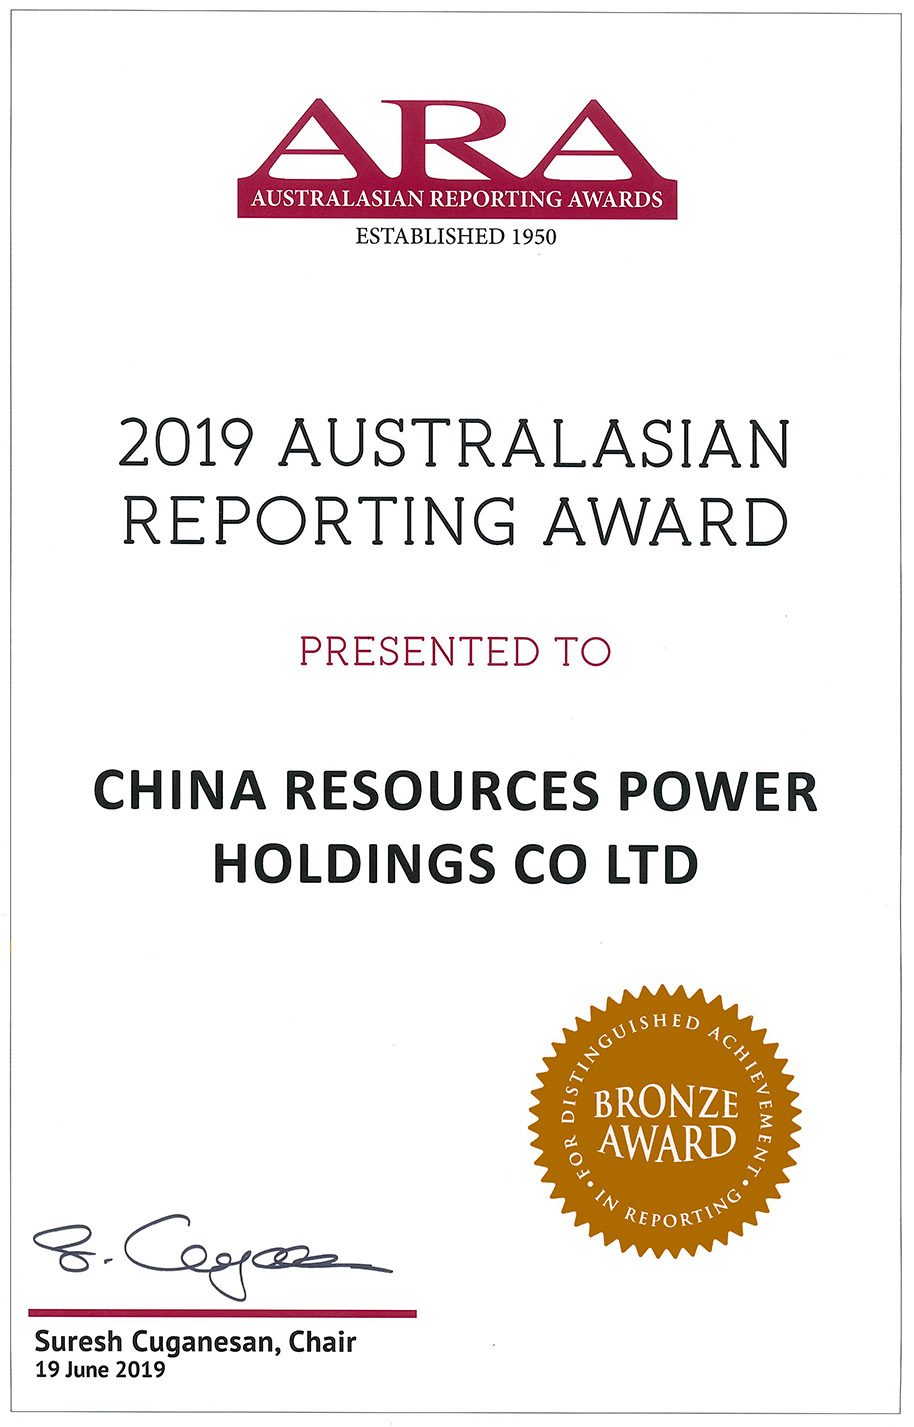 CHINA RESOURCES POWER HOLDINGS CO LTD – 2019 AUSTRALASIAN REPORTING AWARD BRONZE AWARD